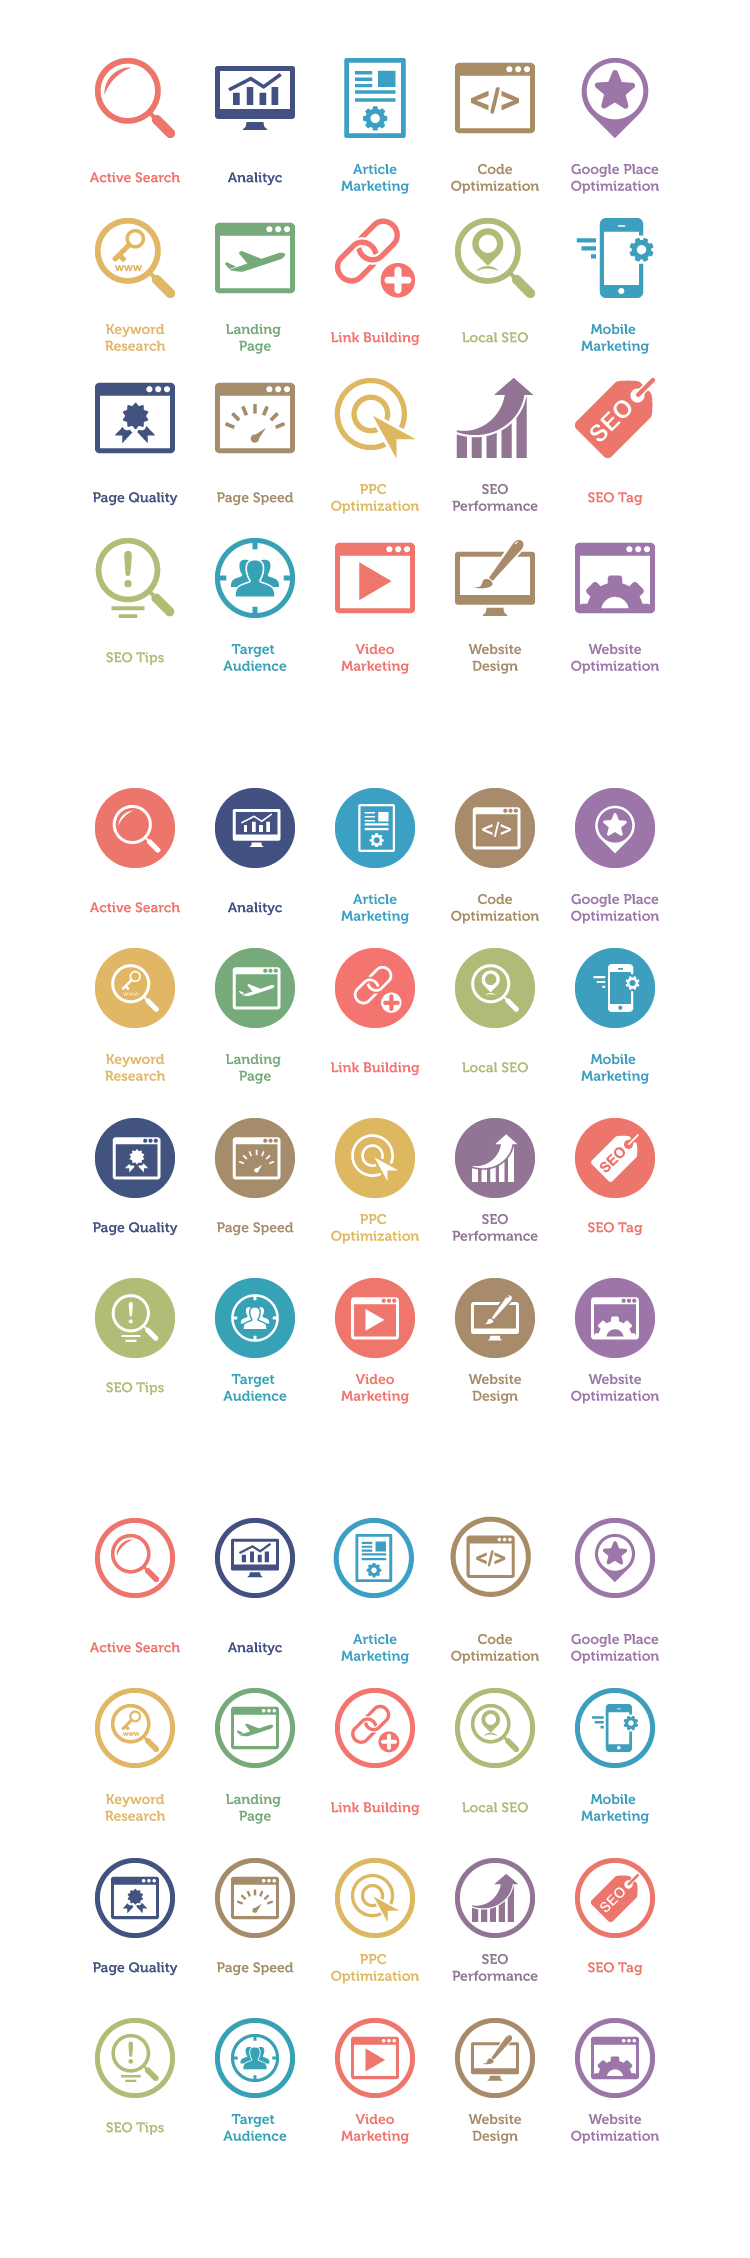 160 Free SEO and Internet Marketing Icons